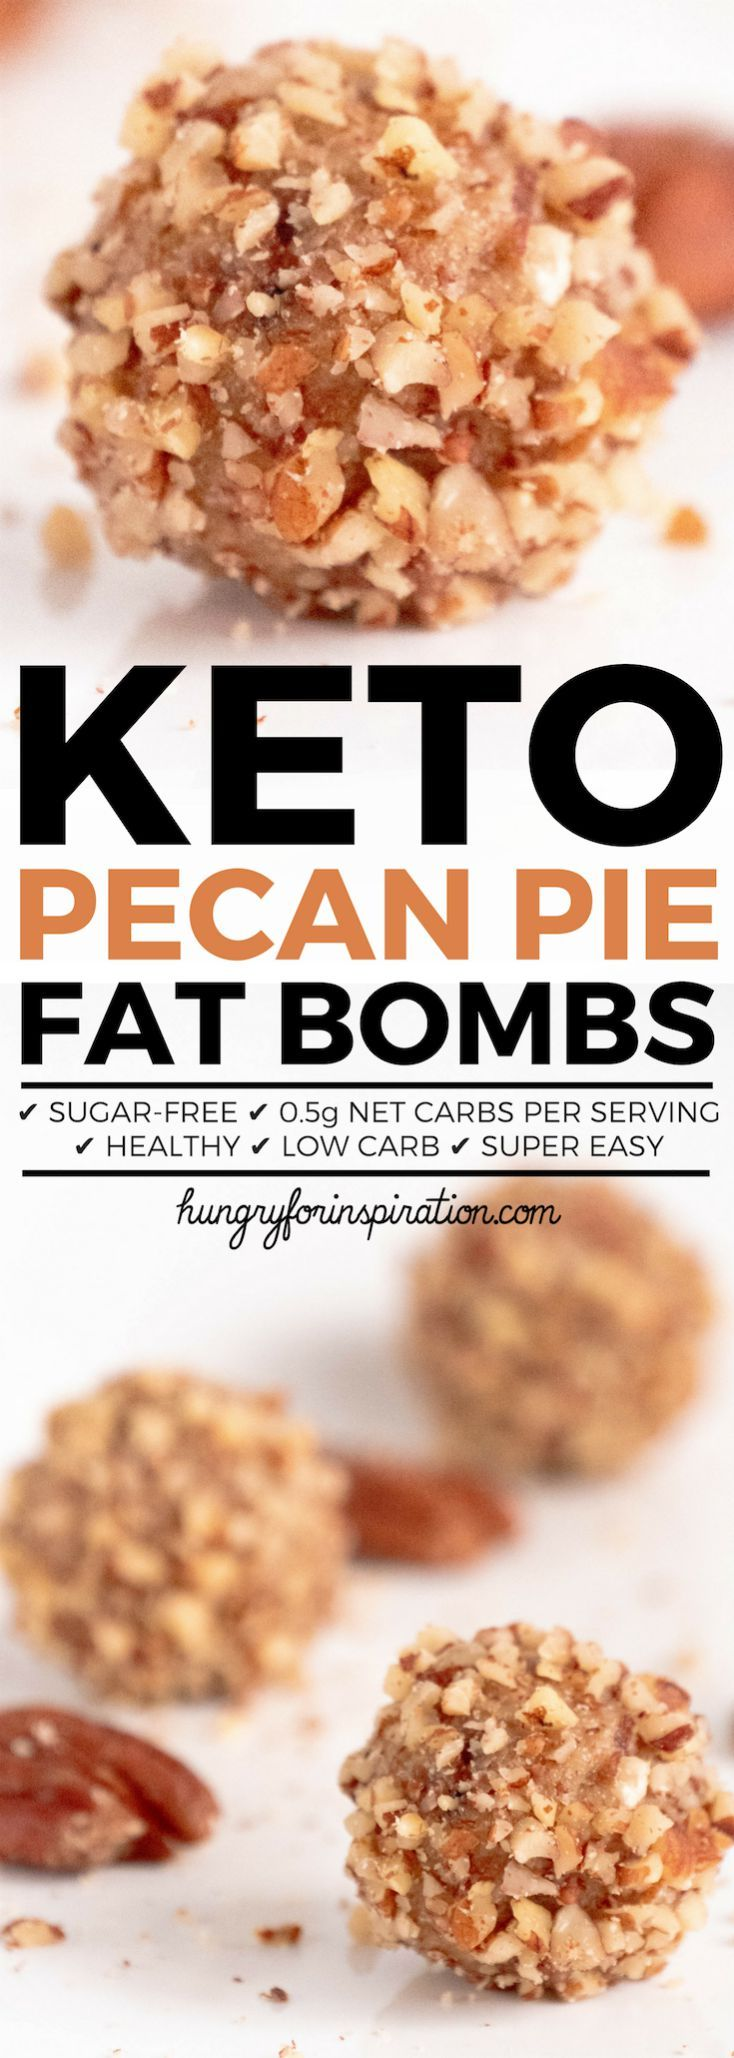 Heavenly Pecan Pie Keto Fat Bombs! Forget that you're on a diet with this easy Keto Dessert or Keto Snack that tastes like pecan pie! Incredibly delicious, easy to make and only 0.5g net carbs per serving! #keto #ketodessert #ketorecipes #ketodiet #ketogenic #ketogenicdiet #lowcarb #ketosnacks #lowcarbdiet #lowcarbrecipes #lowcarbdessert #lowcarbsnacks #ketodesserts